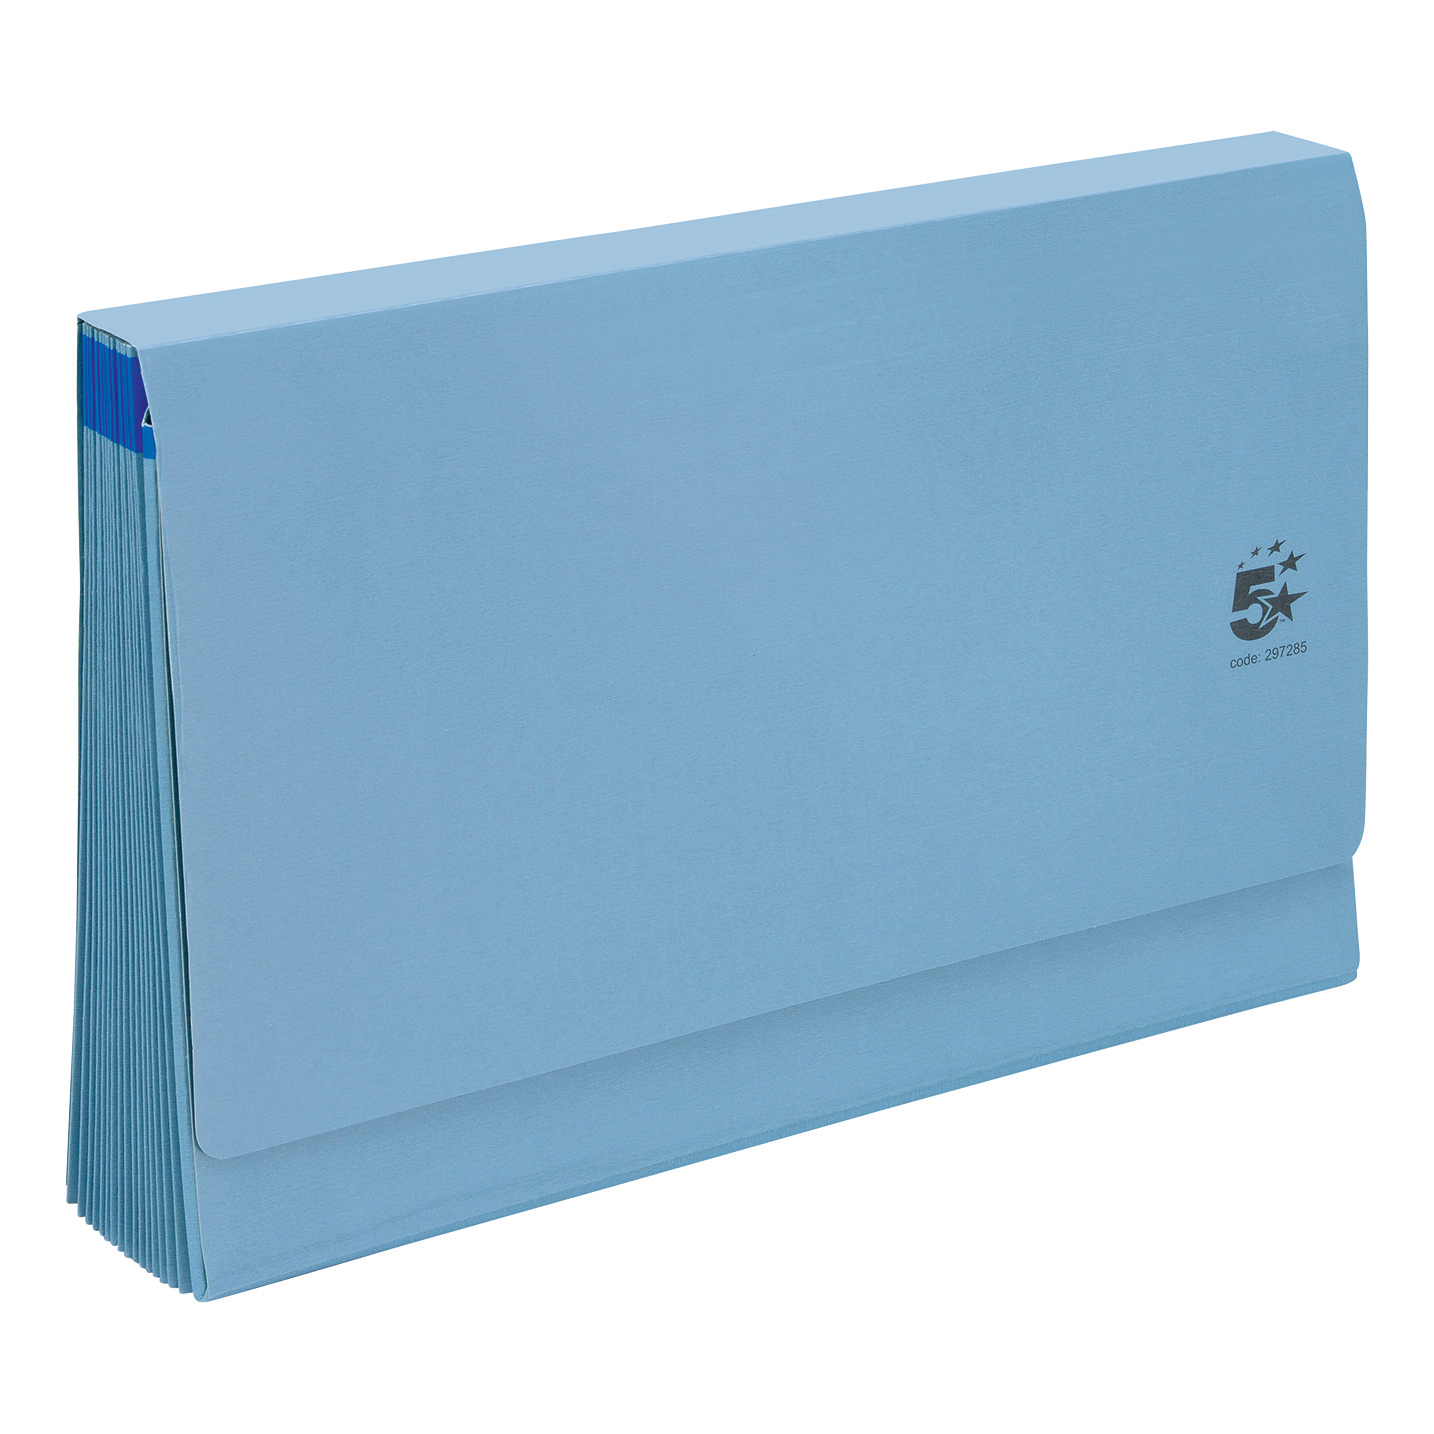 Expanding Files 5 Star Office De Luxe Expanding File 16 Pockets 1-31 A-Z Jan-Dec Cardboard Cover Foolscap Blue